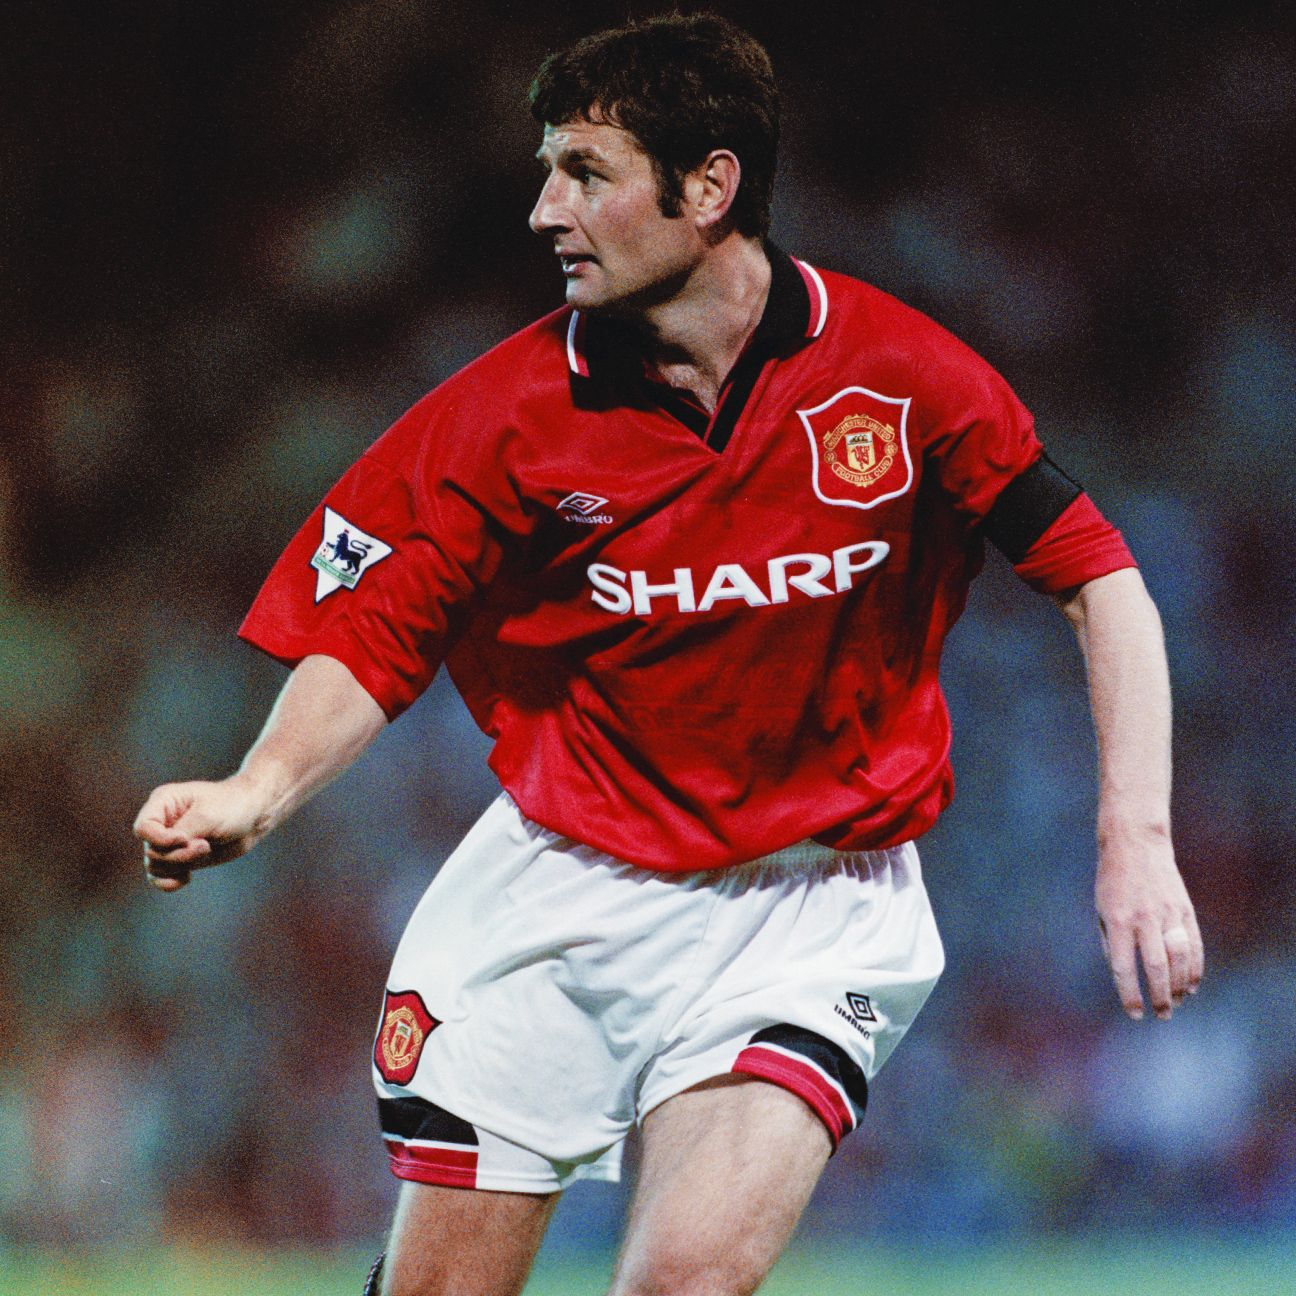 Denis Irwin spent 12 years at Manchester United before leaving in 2002.